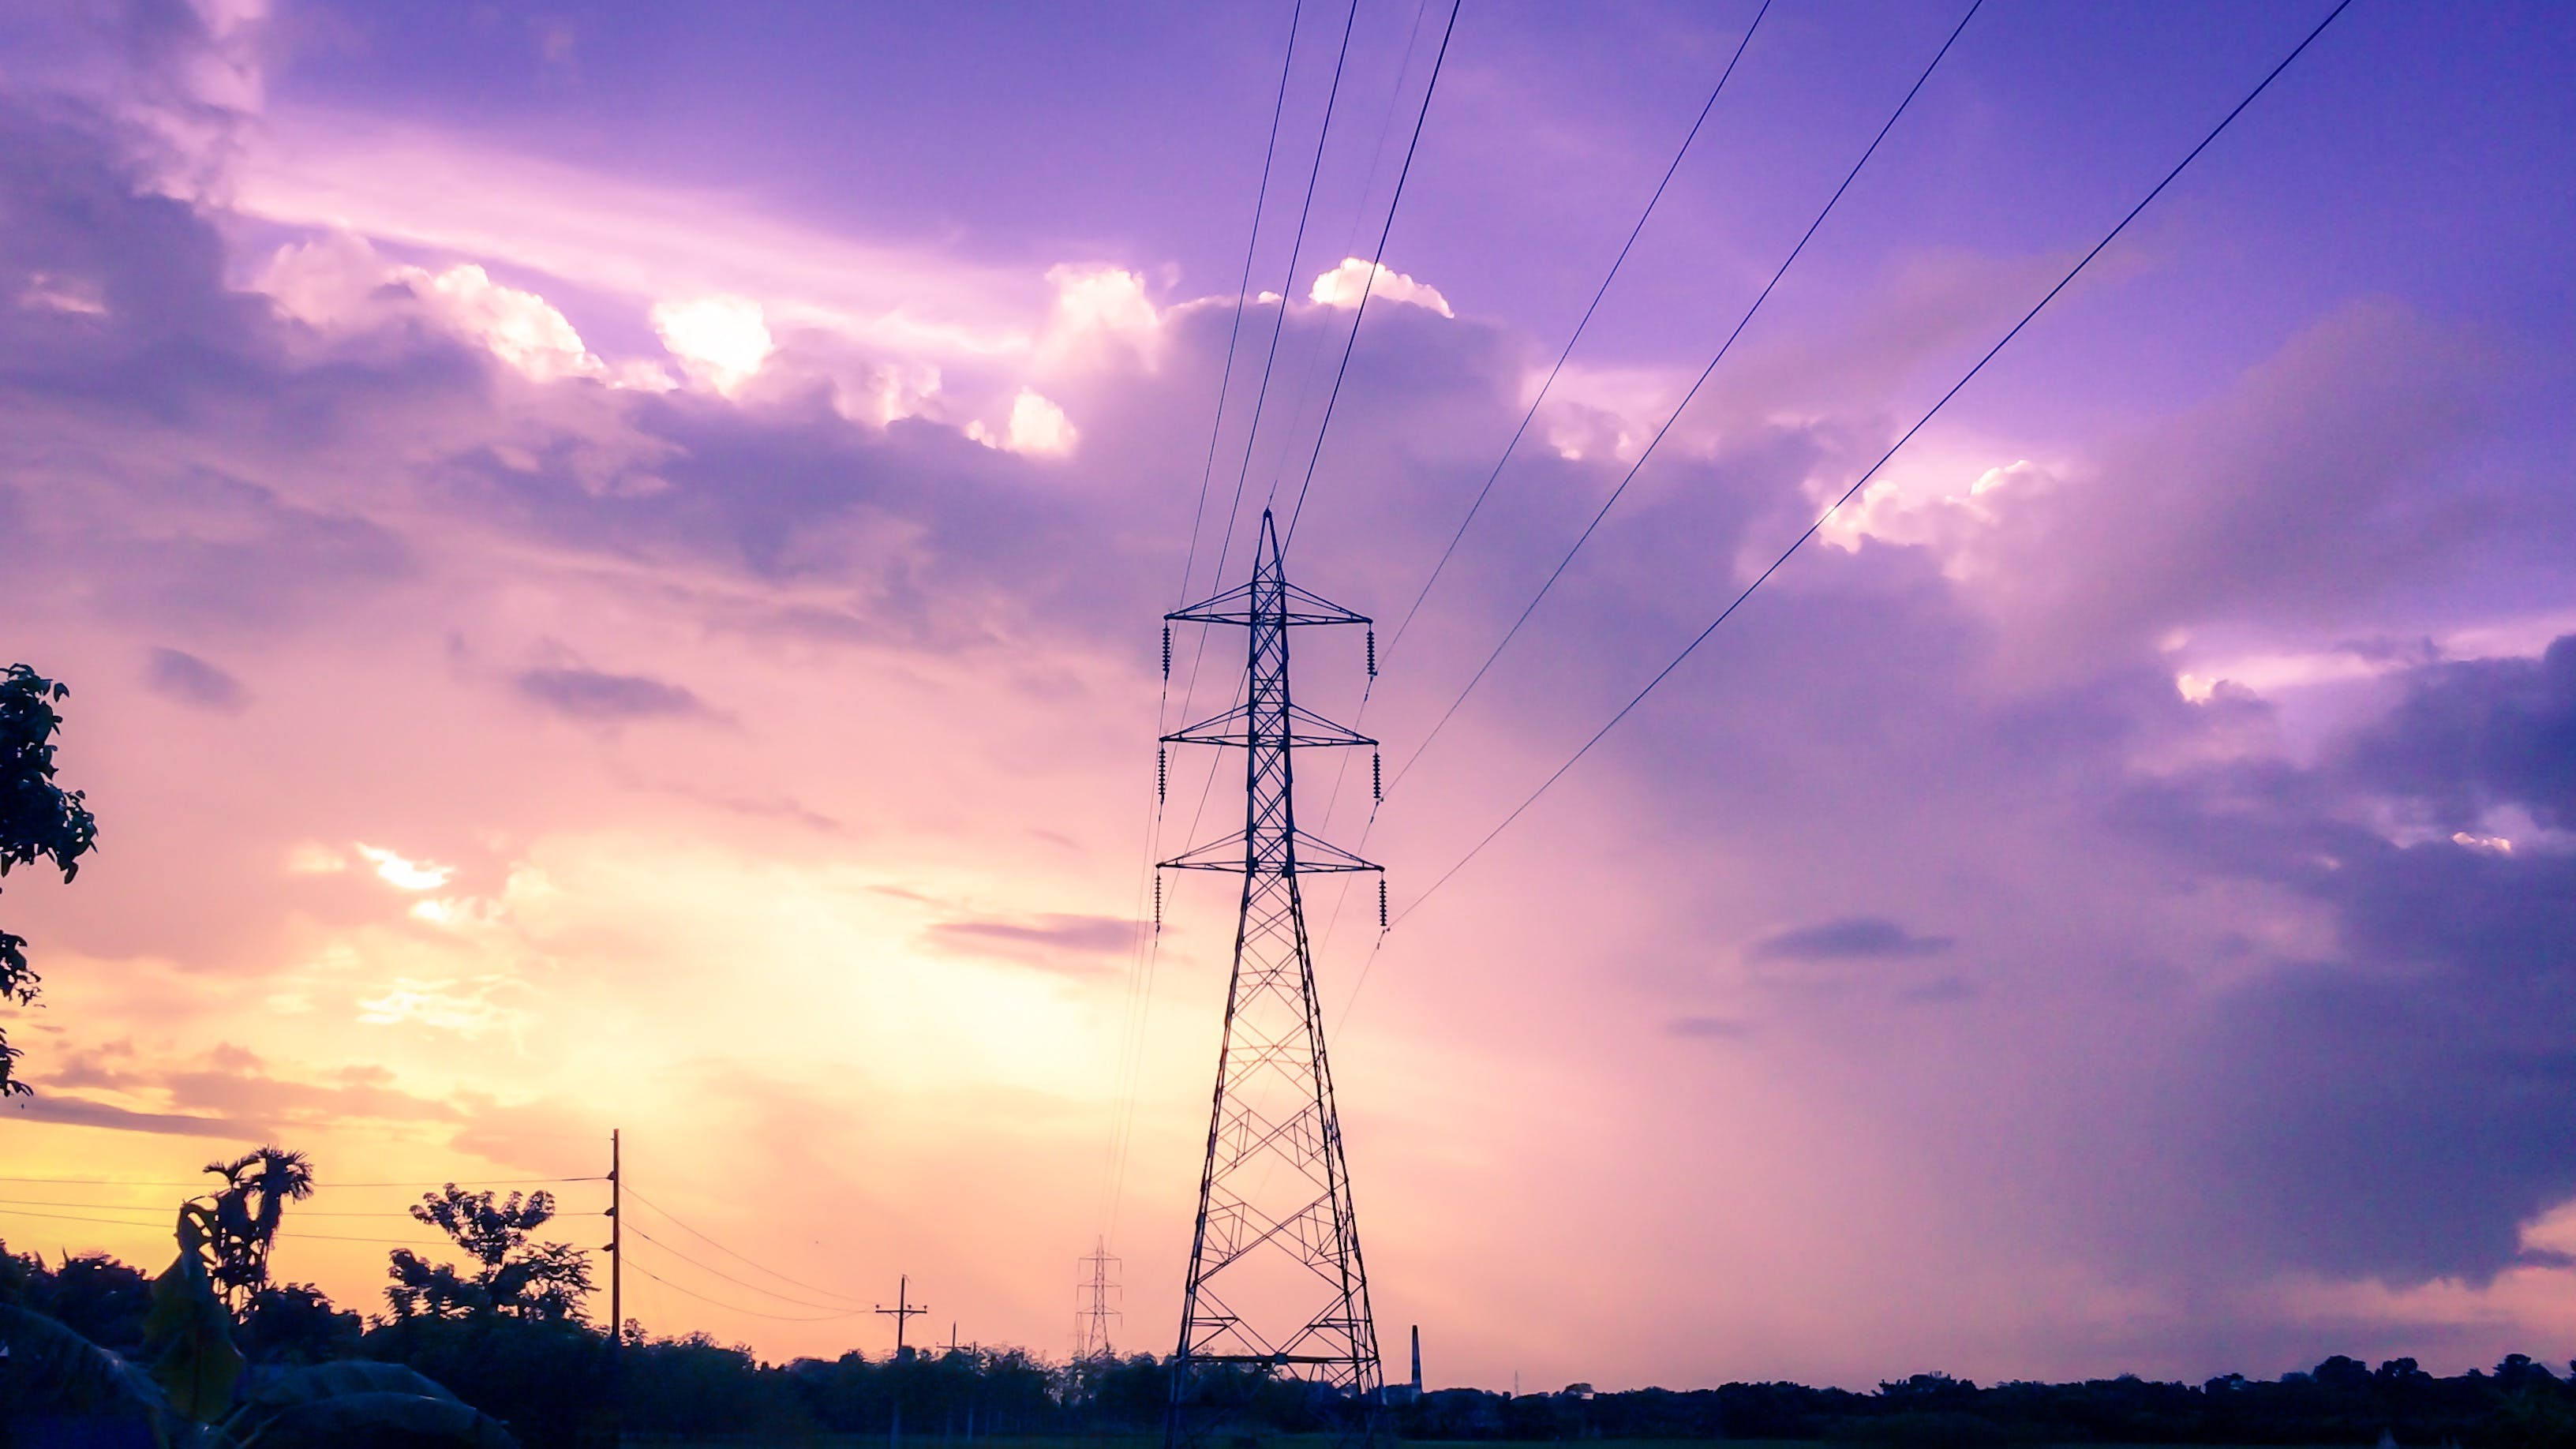 Photography of Electric Tower during Sunset